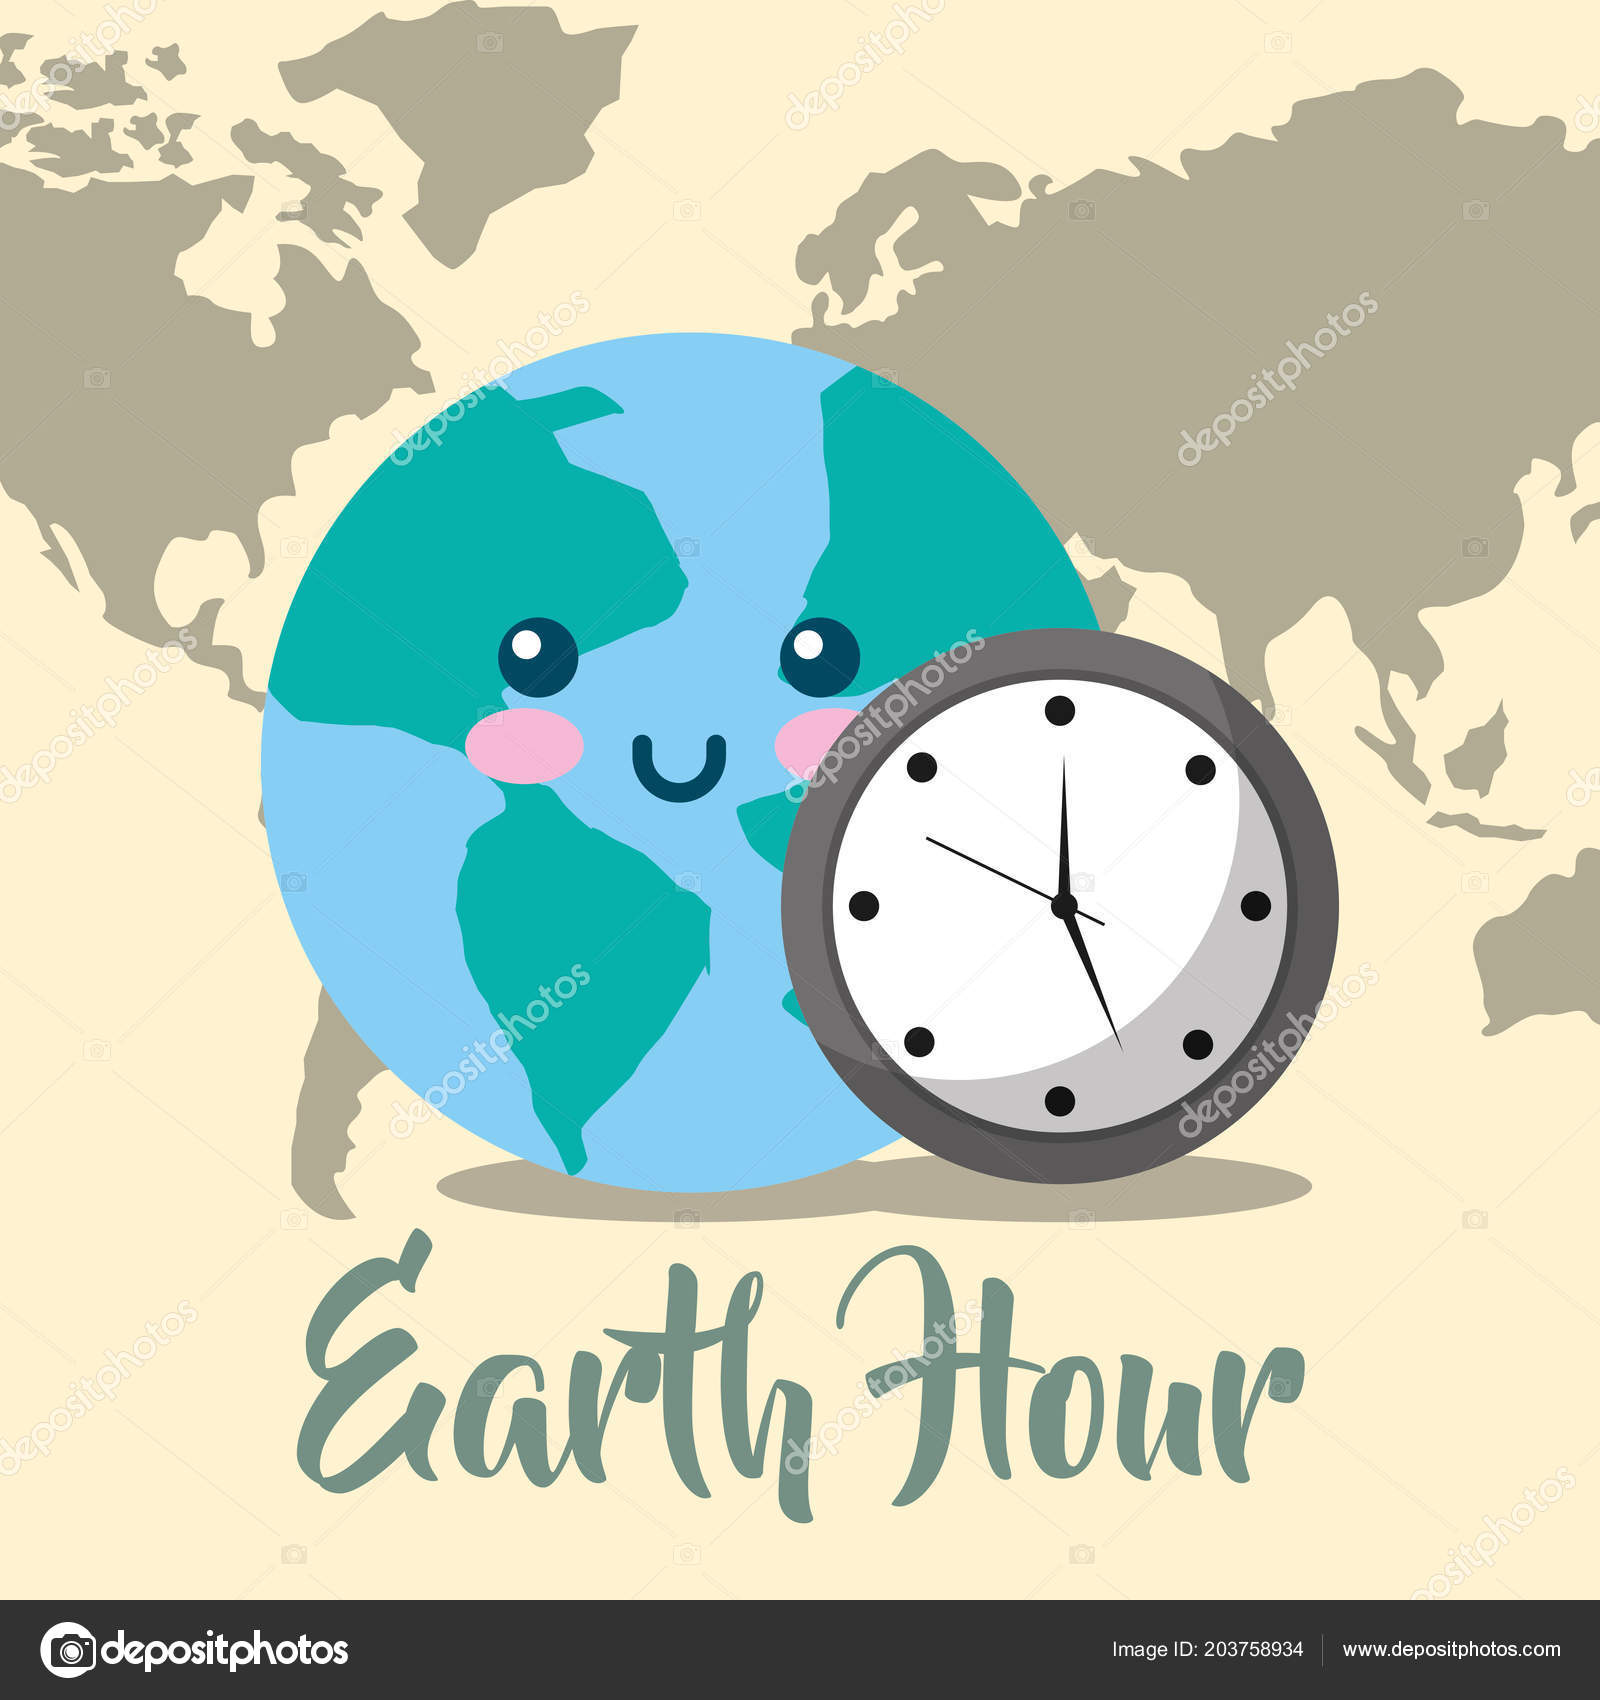 Kawaii Planet World Map Clock Earth Hour Vector Illustration — Stock on life world map, indie world map, design world map, cross world map, retro world map, anime world map, gothic world map, cats world map, candy world map, winter world map, nature world map, drawing world map, green world map, craft world map, love world map, illustration world map, jewelry world map, rainbow world map, coffee world map,